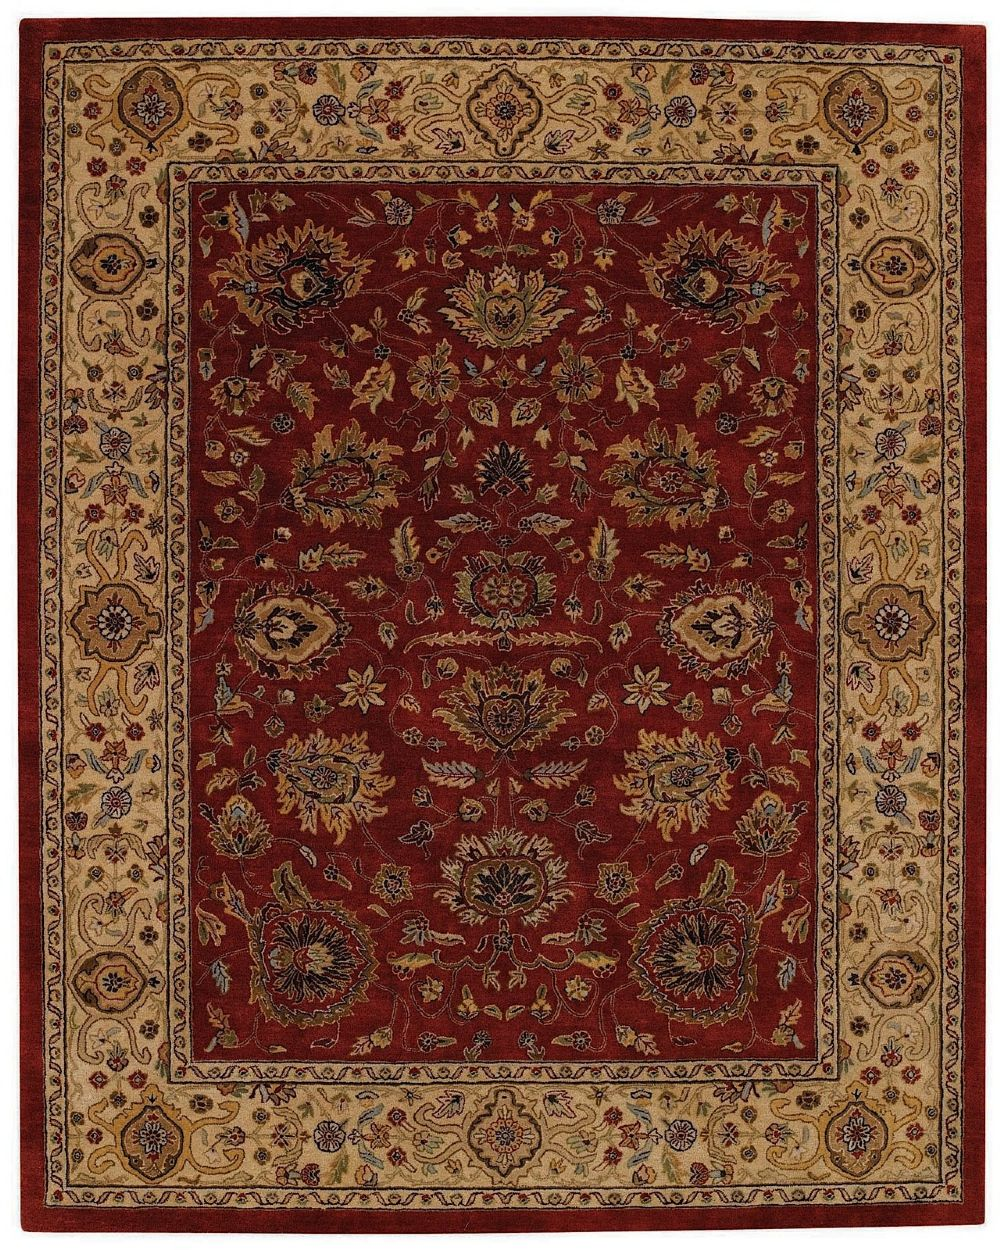 capel forest park-zieglar traditional area rug collection